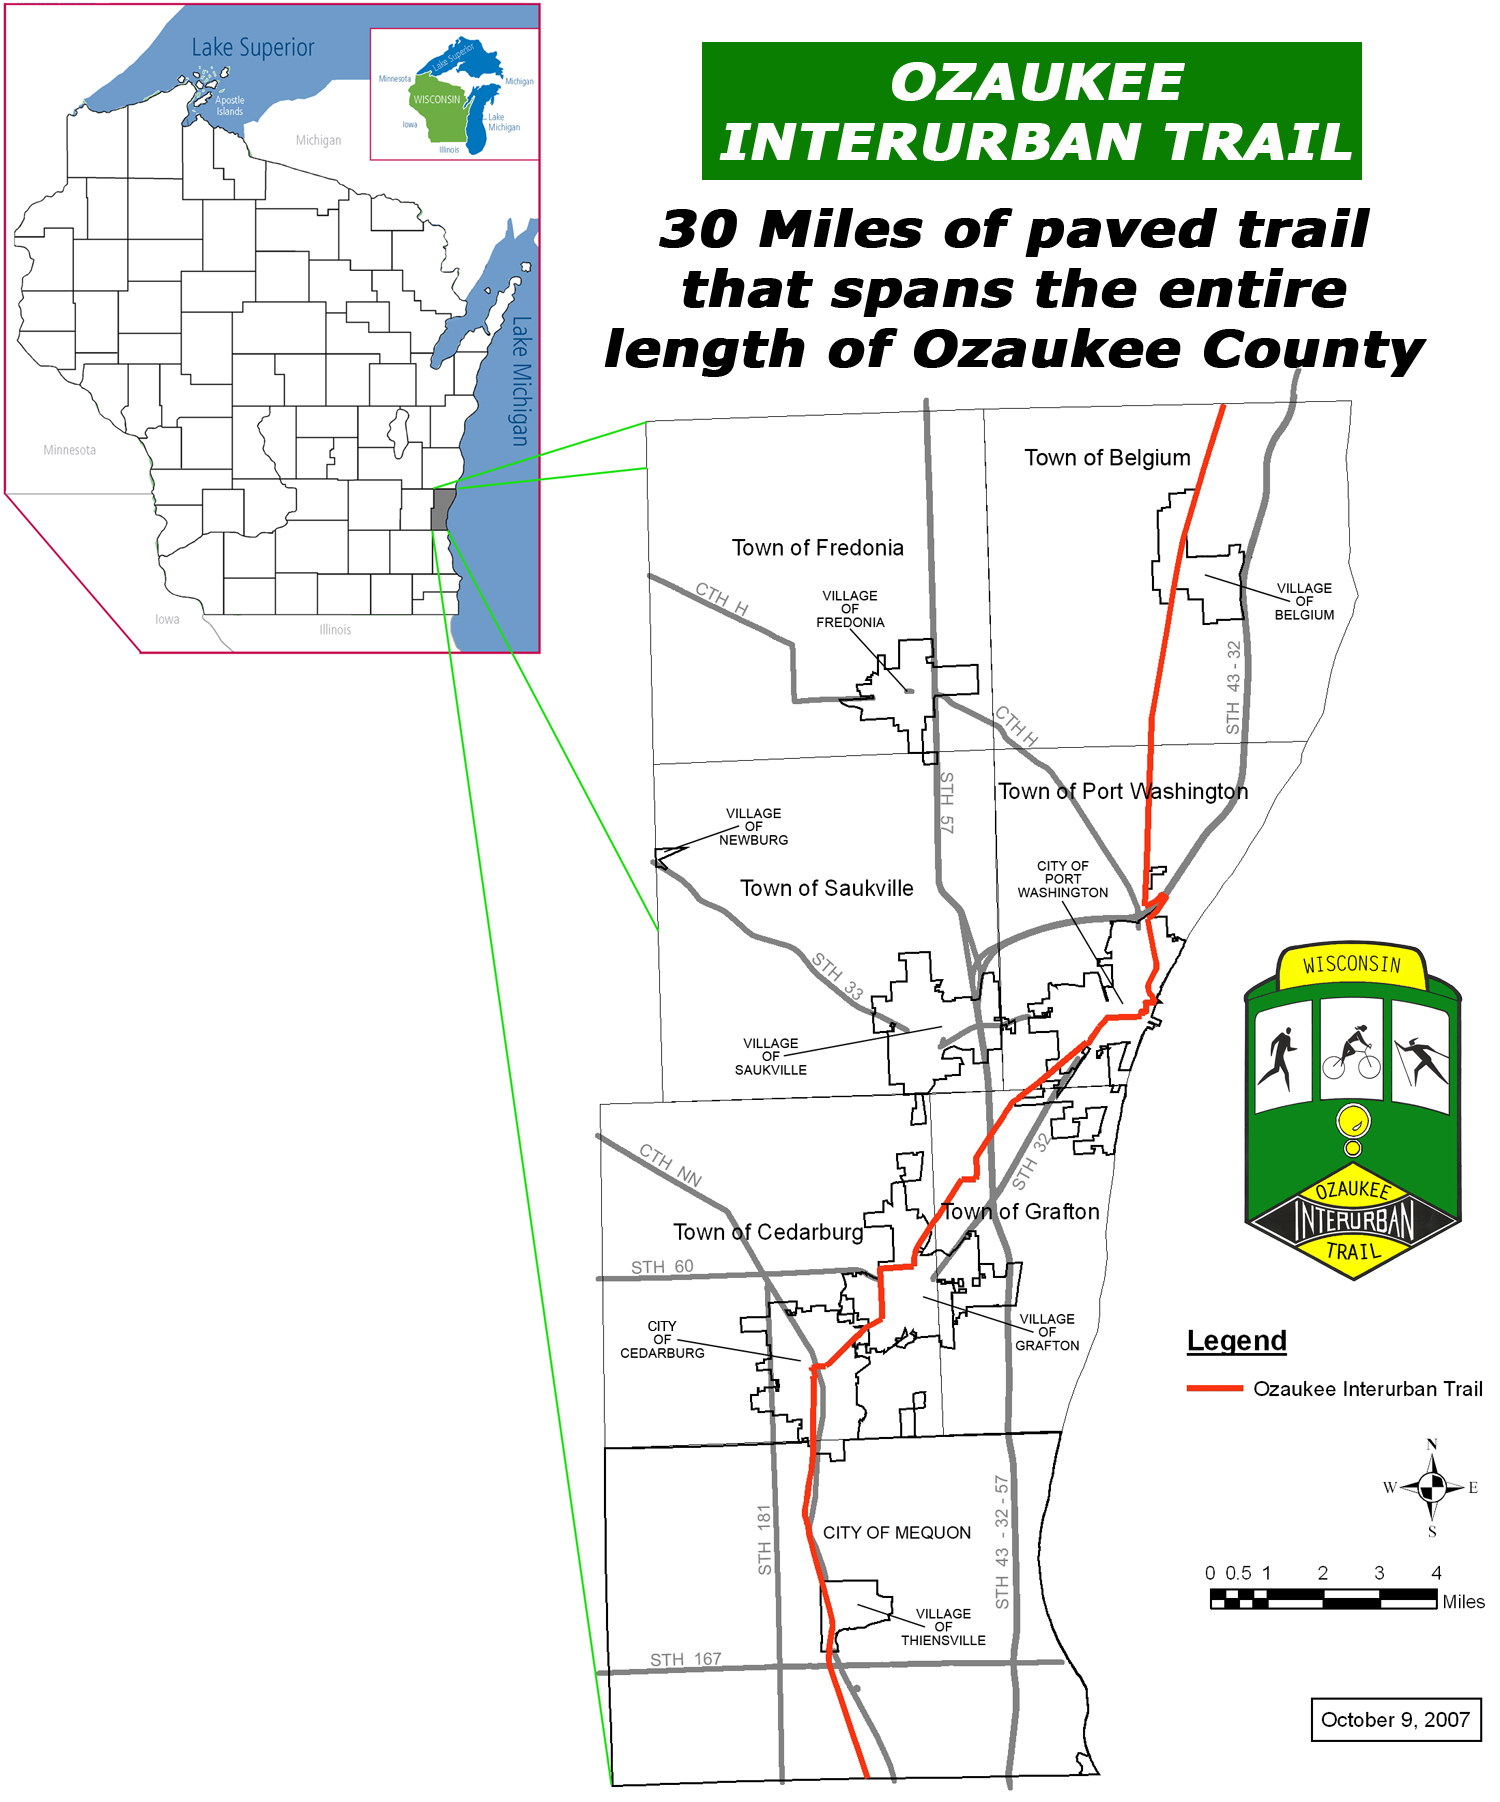 Interurban Trail Map and Scale